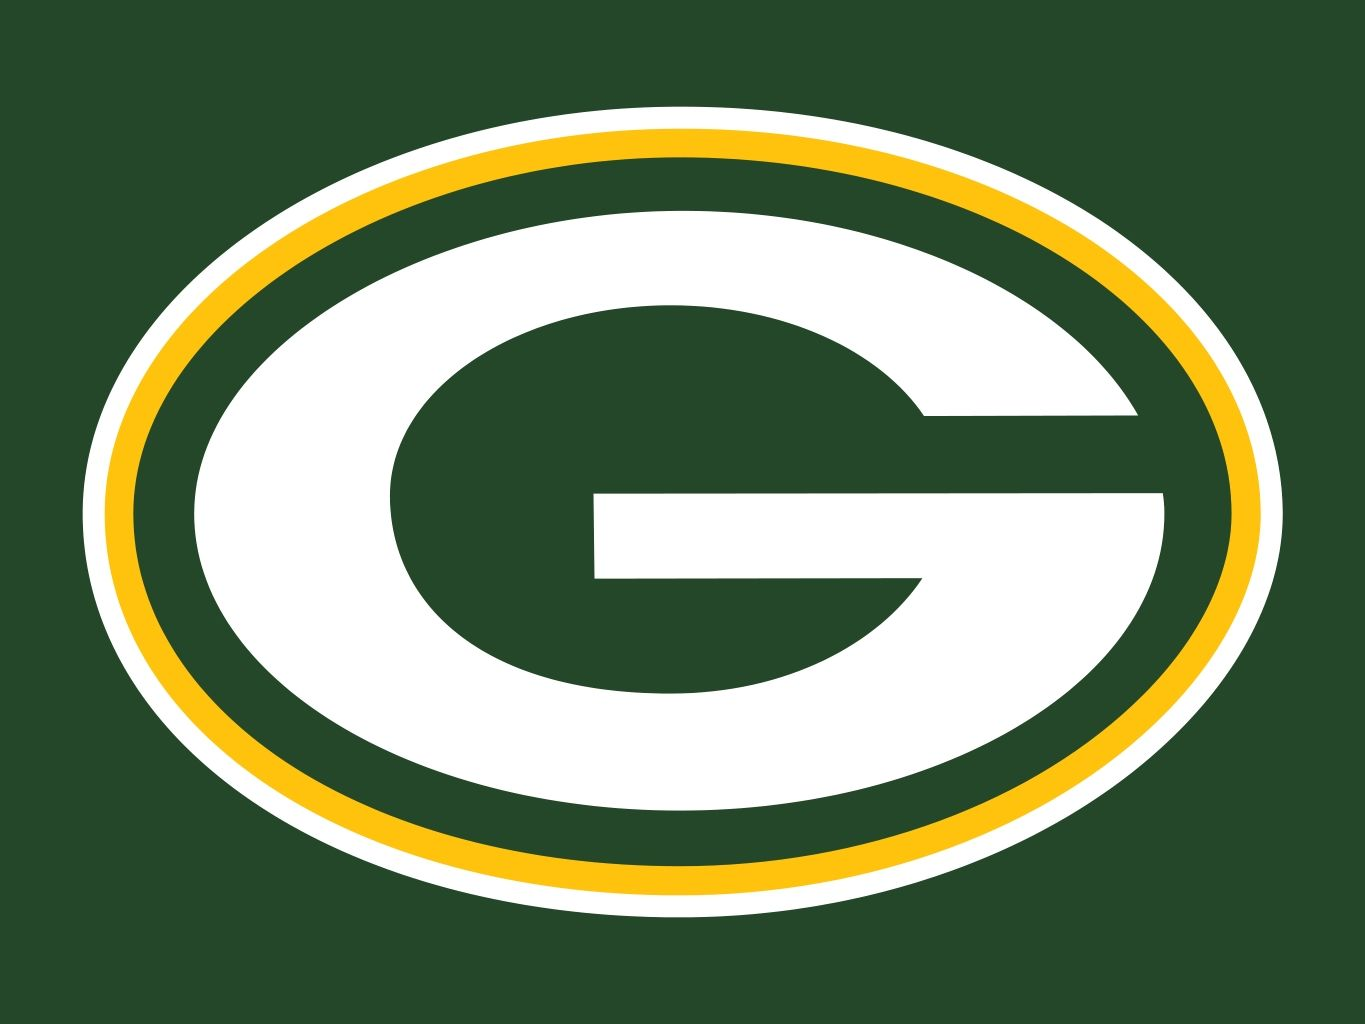 Green bay packer vibrator